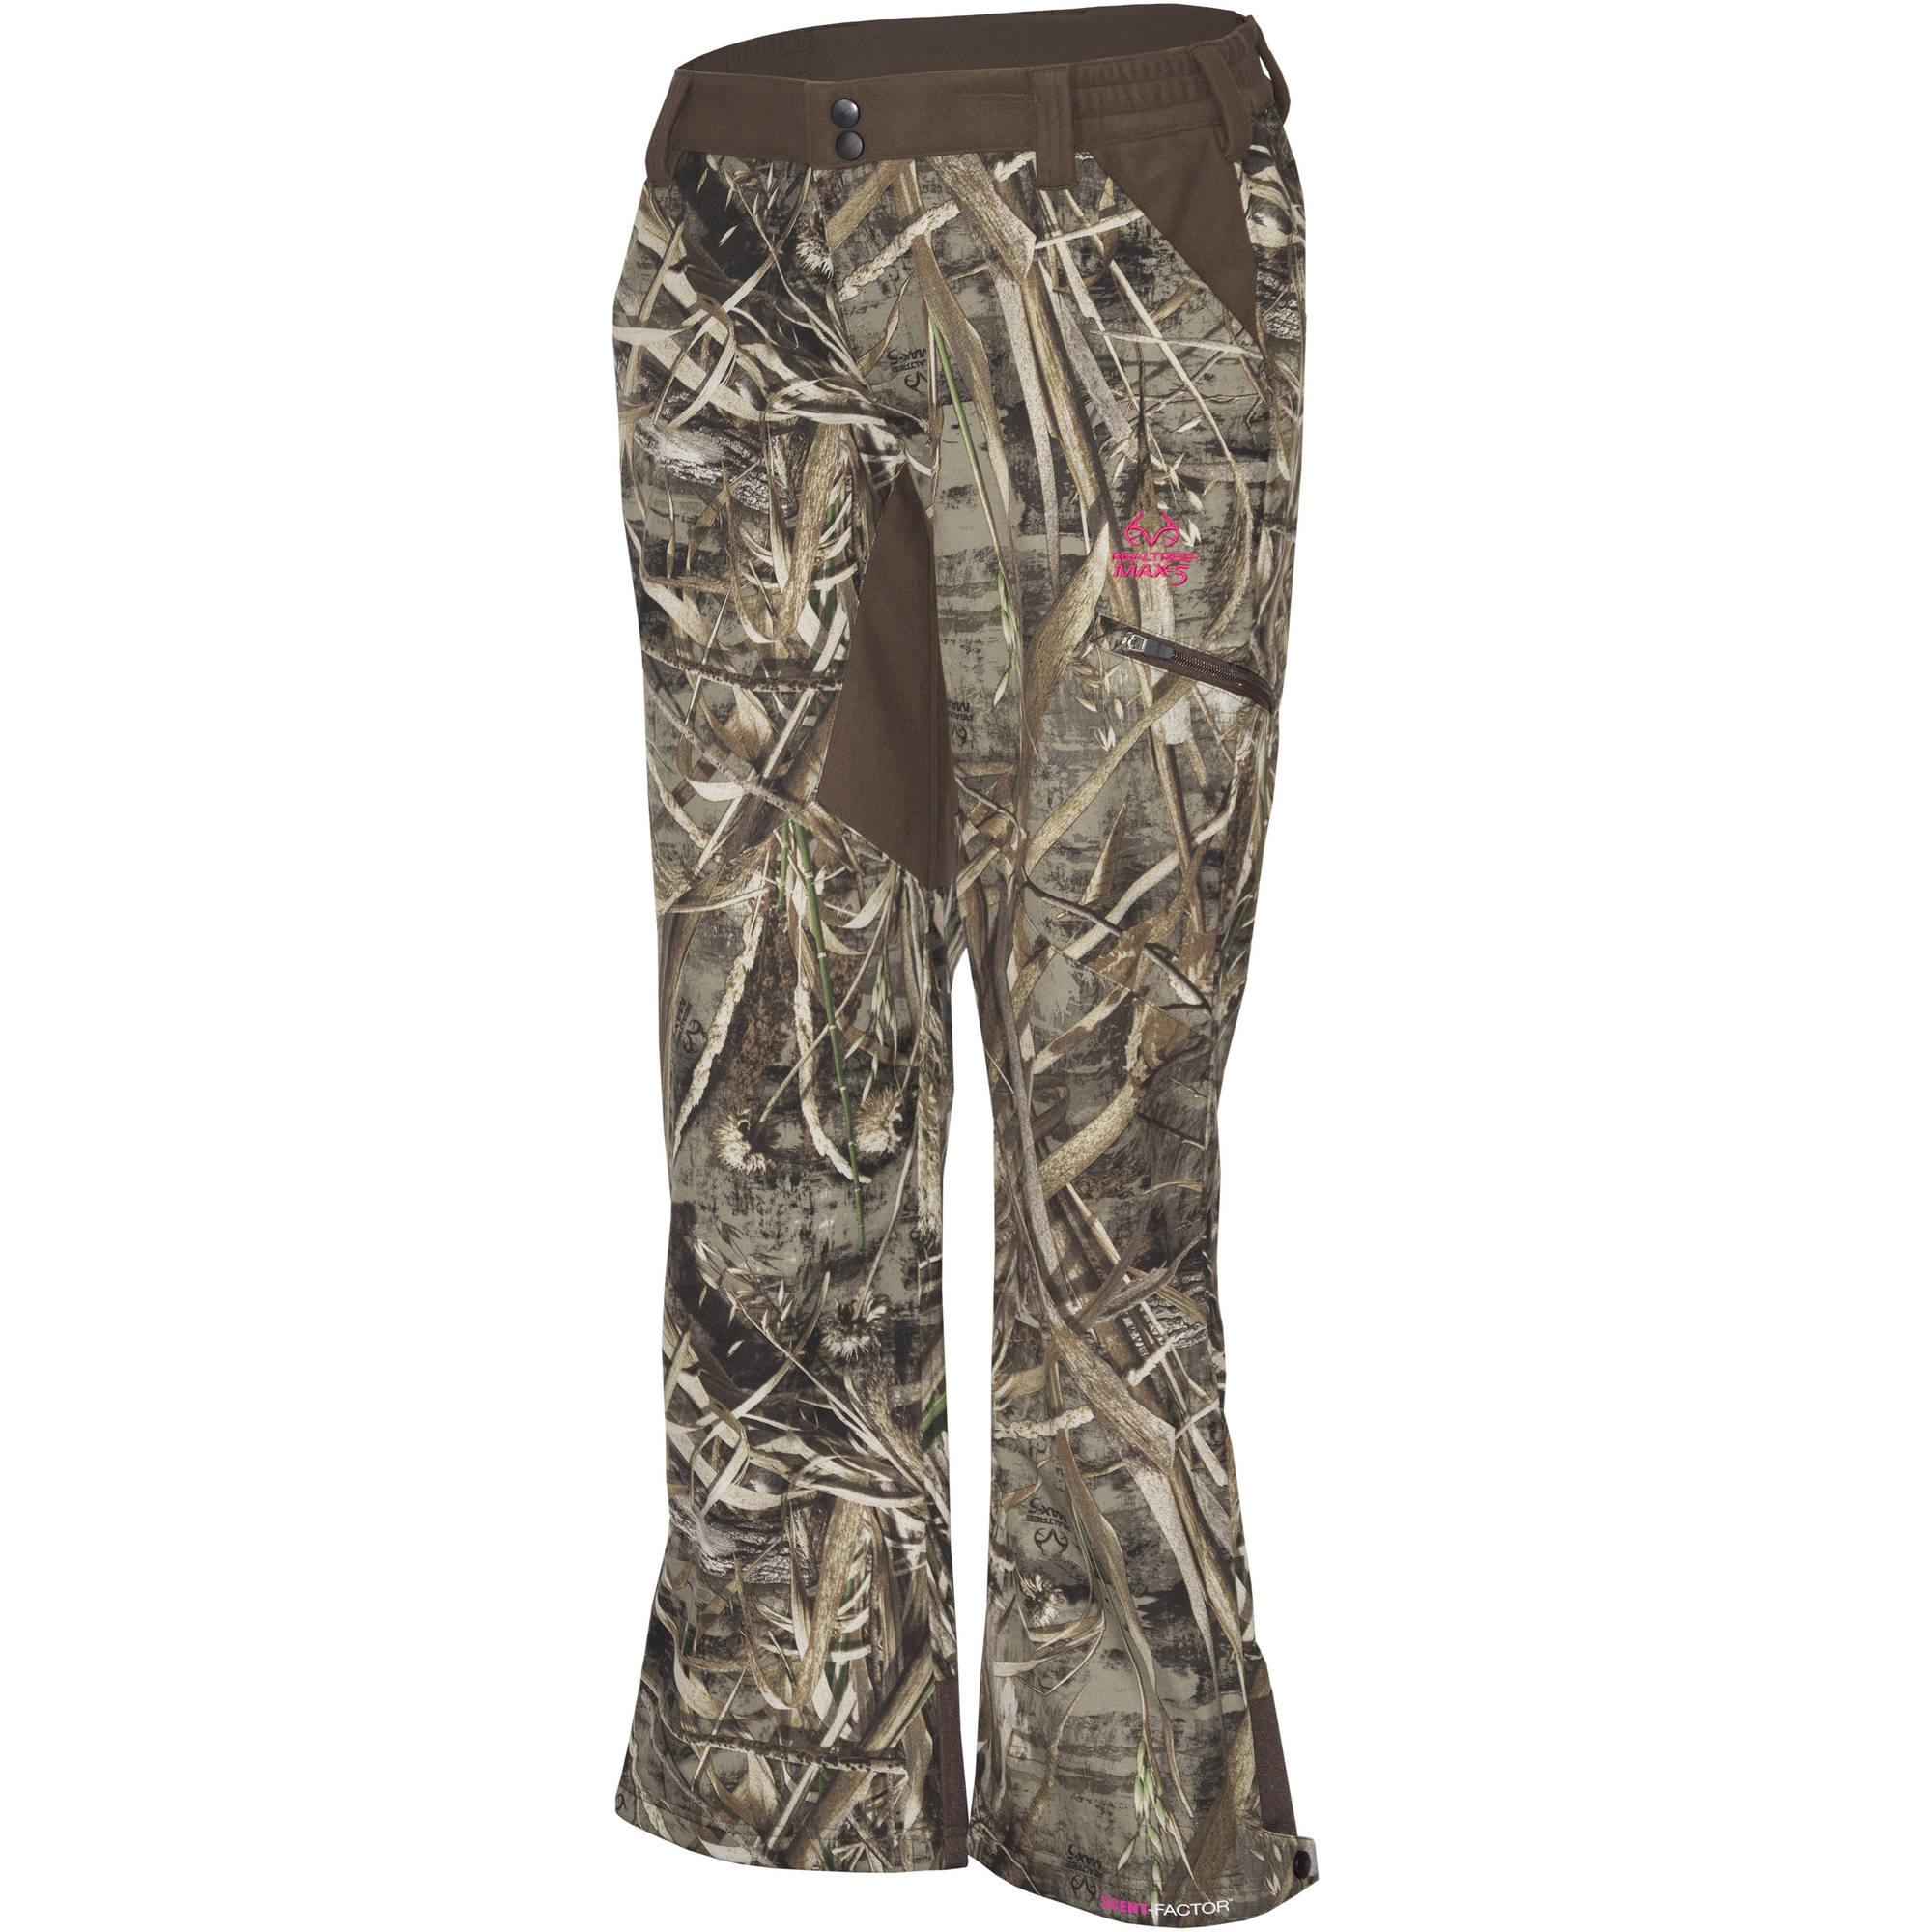 Ladies Softshell Pant, Available in Multiple Patterns